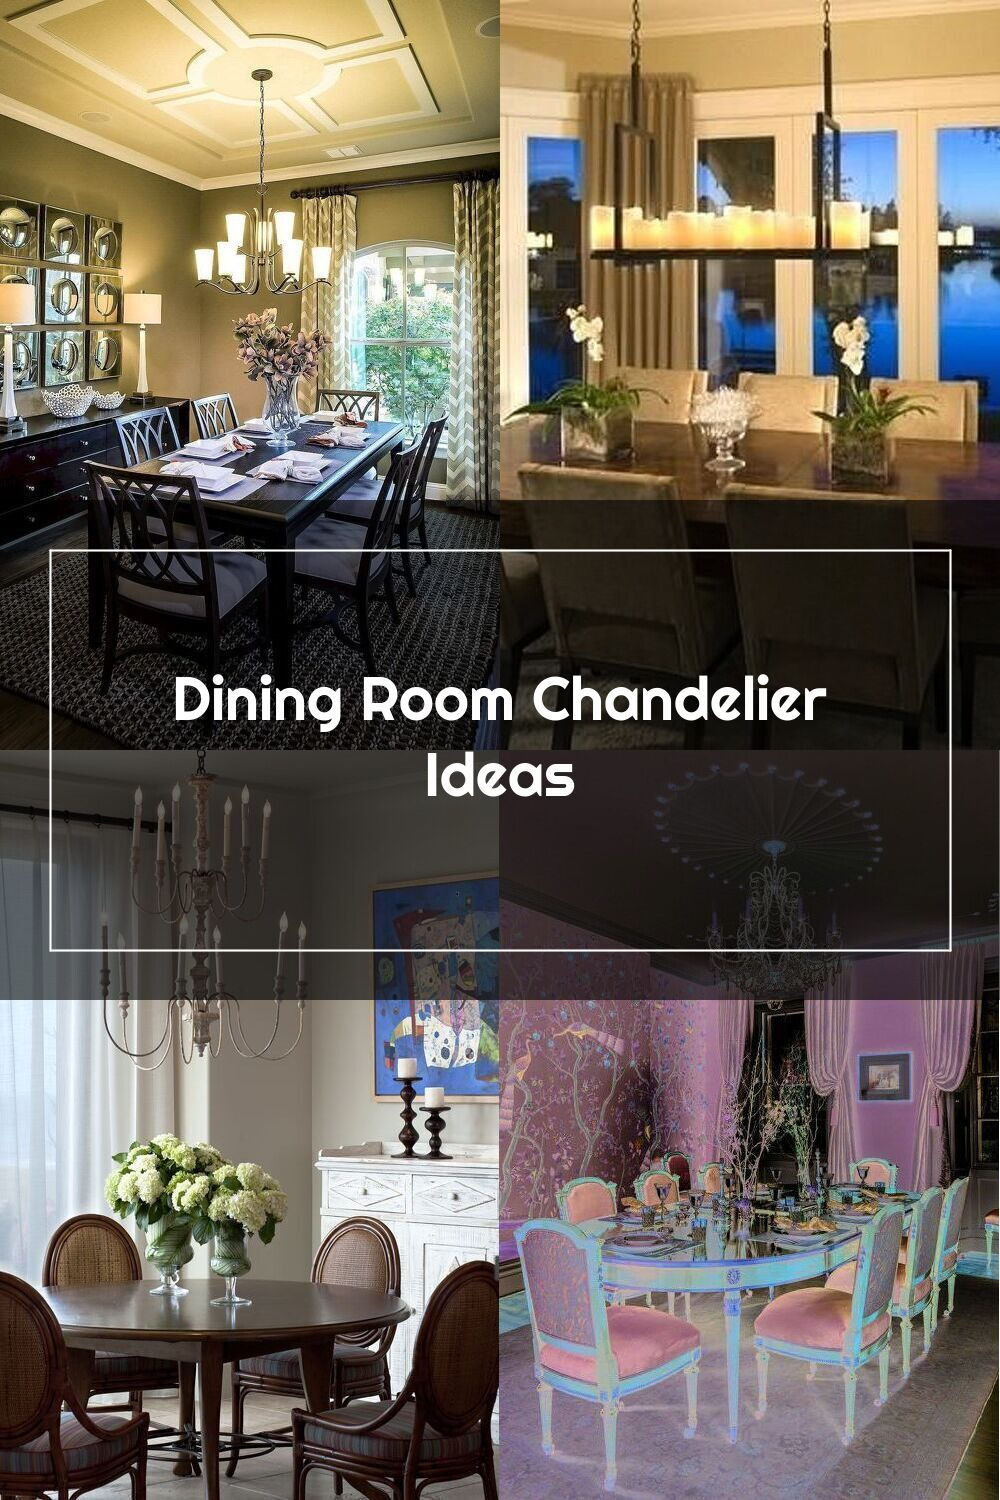 Super Creative Square Dining Room Chandeliers Just On Homesable Home Design Dining Room Chandelier Dining Room Formal Dining Room